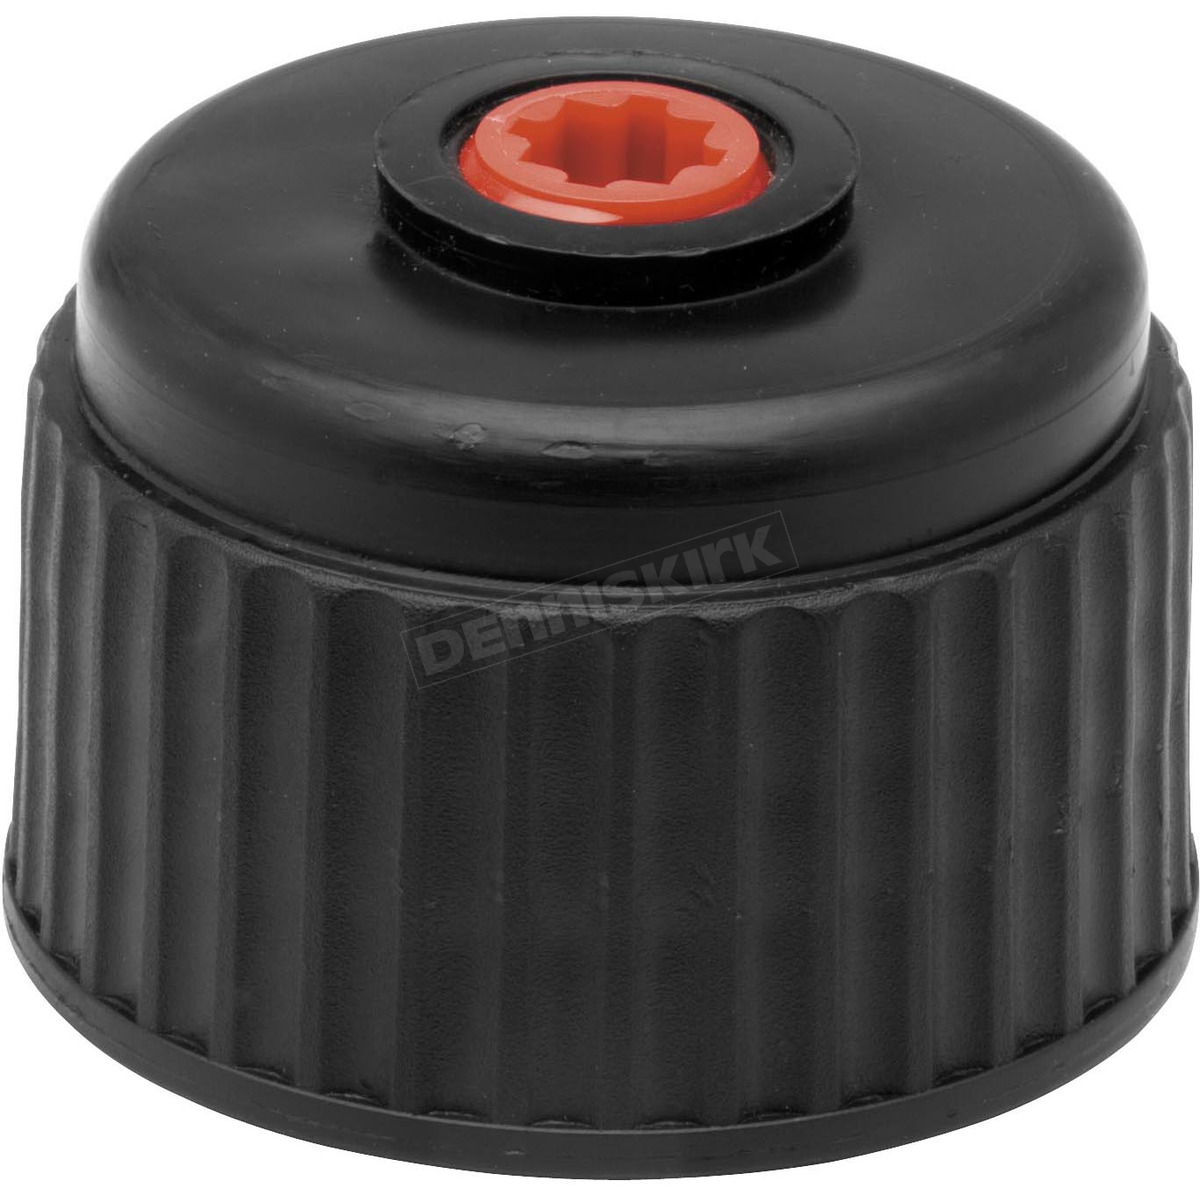 Replacement Cap for Square Utility Jug - 3042